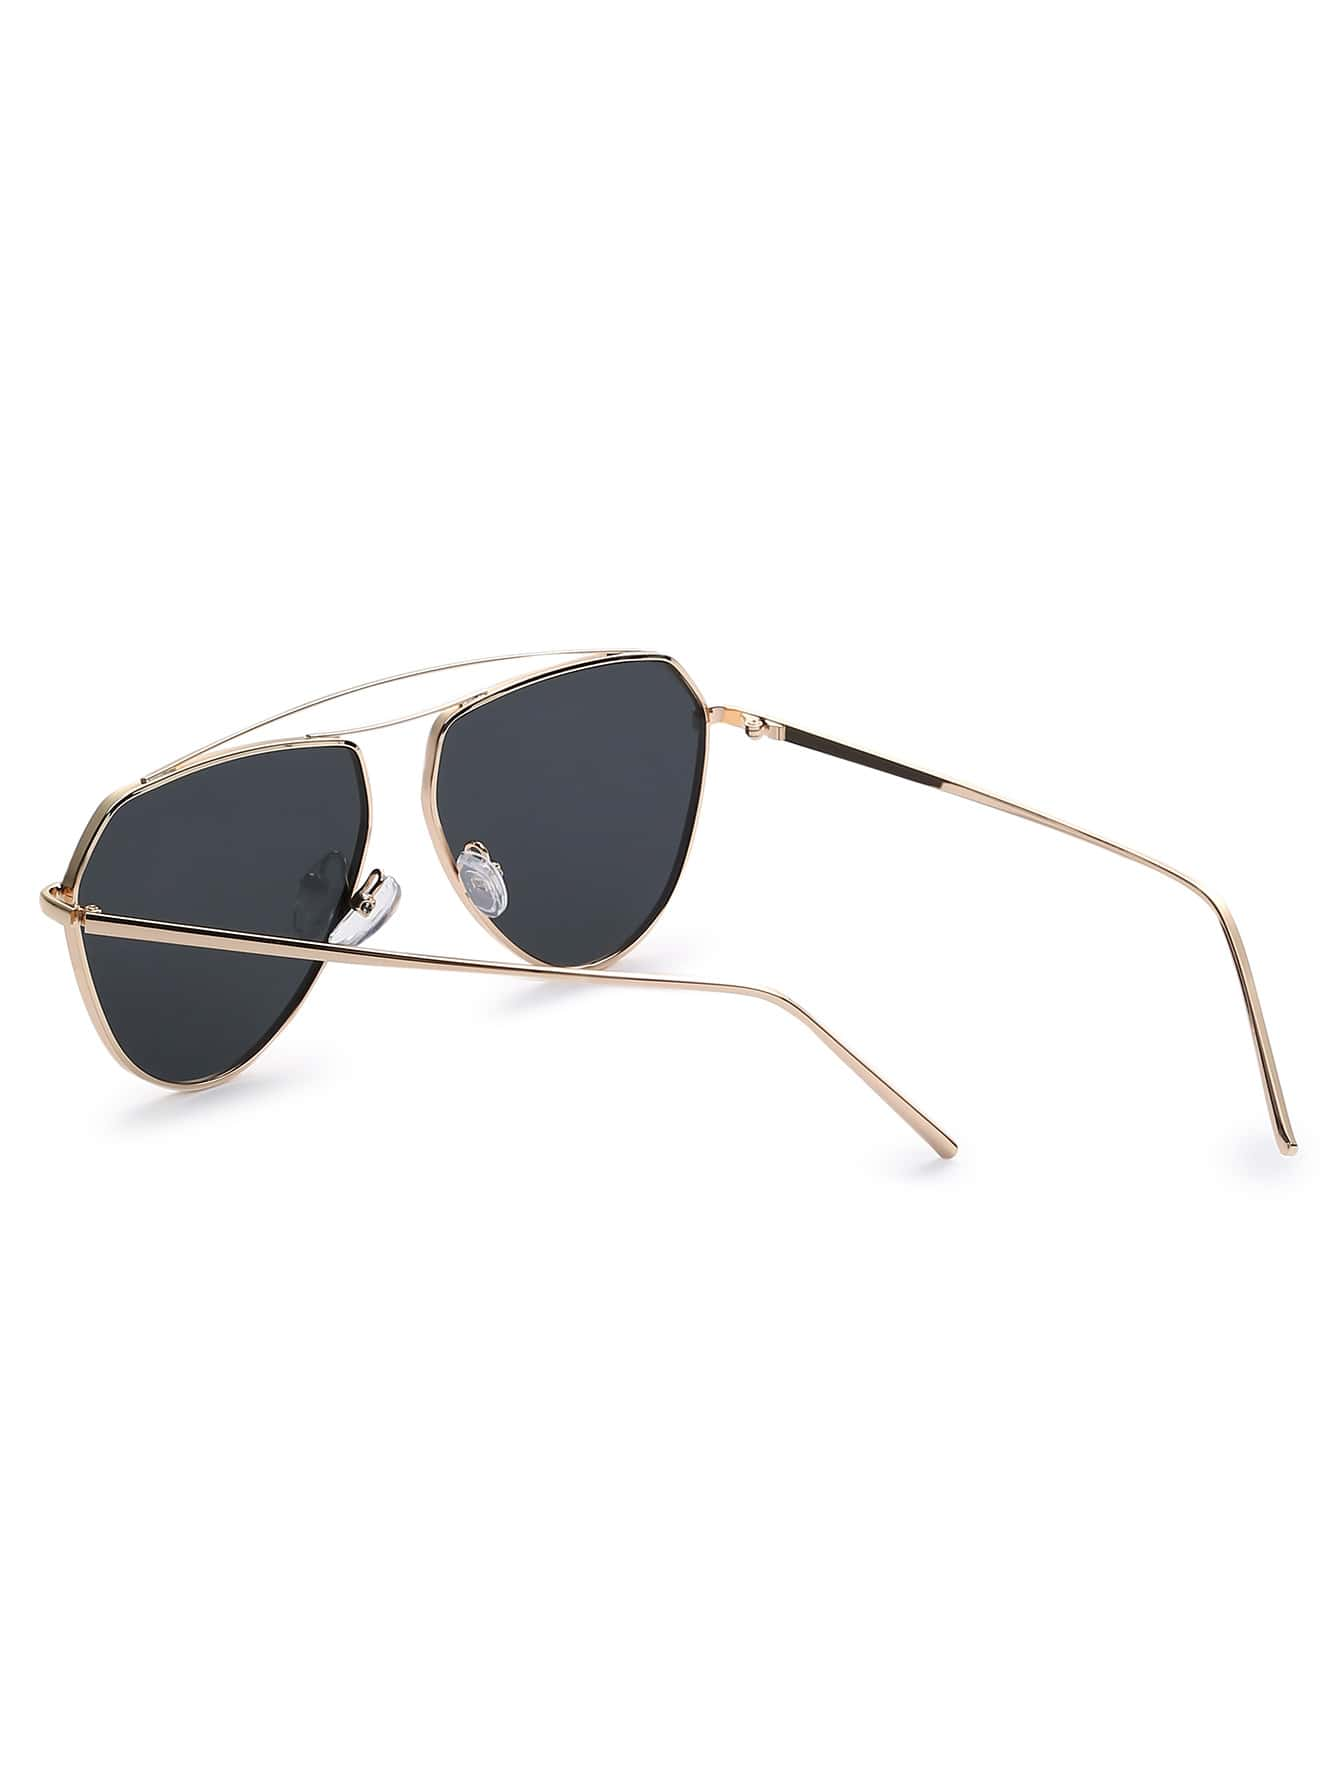 7c6043eb43e2 Gold Frame Black Lenses Aviator Sunglasses